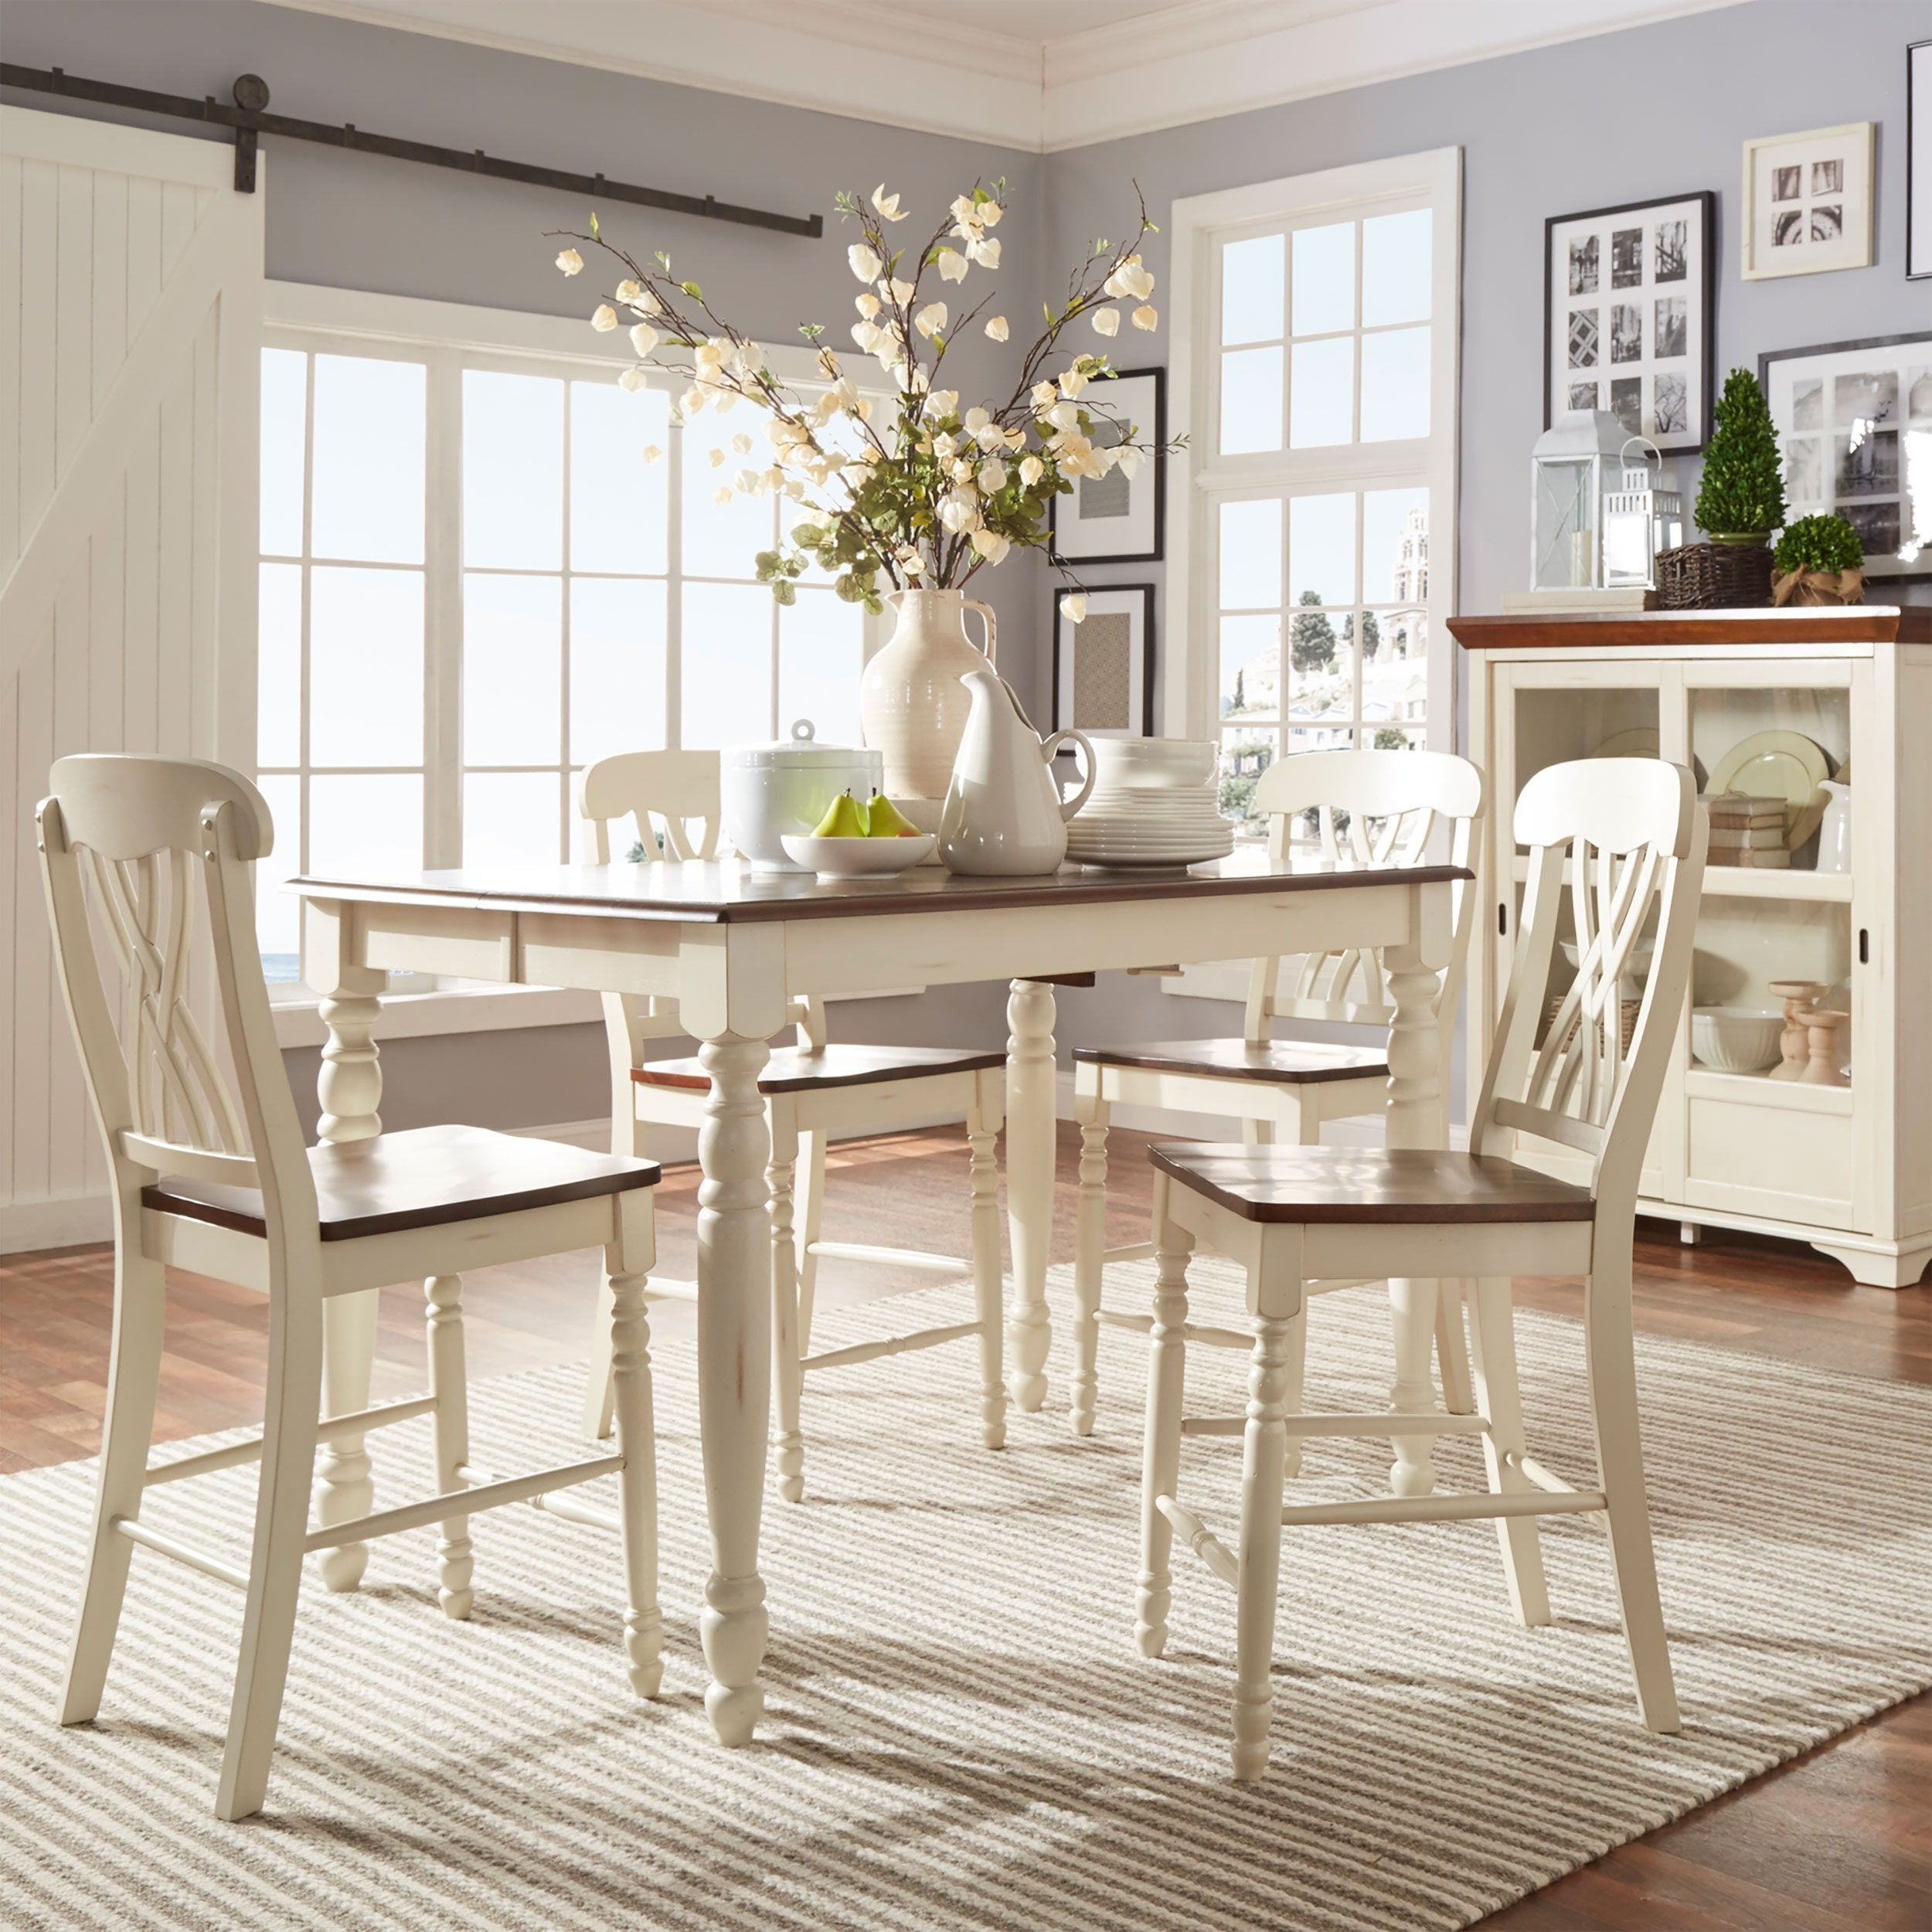 Country Kitchen Table Sets: Mackenzie Counter-height Extending Dining Set By INSPIRE Q